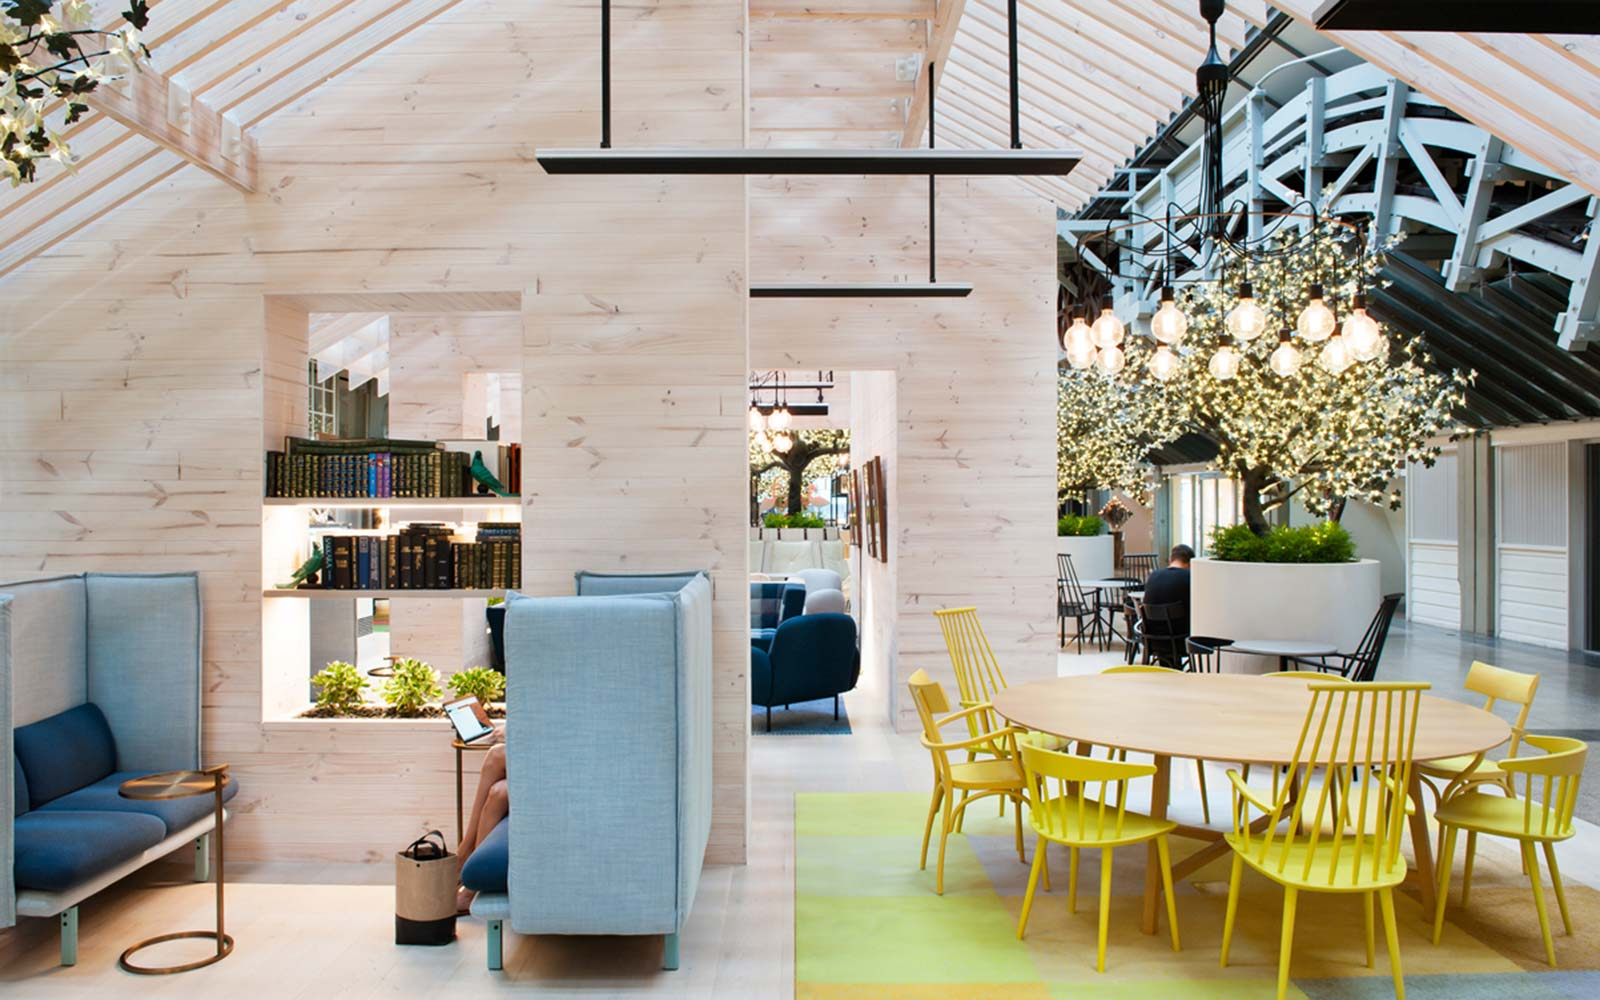 Get 35% Off Two-Night Stays at A High-Design Boutique Hotel in Sydney